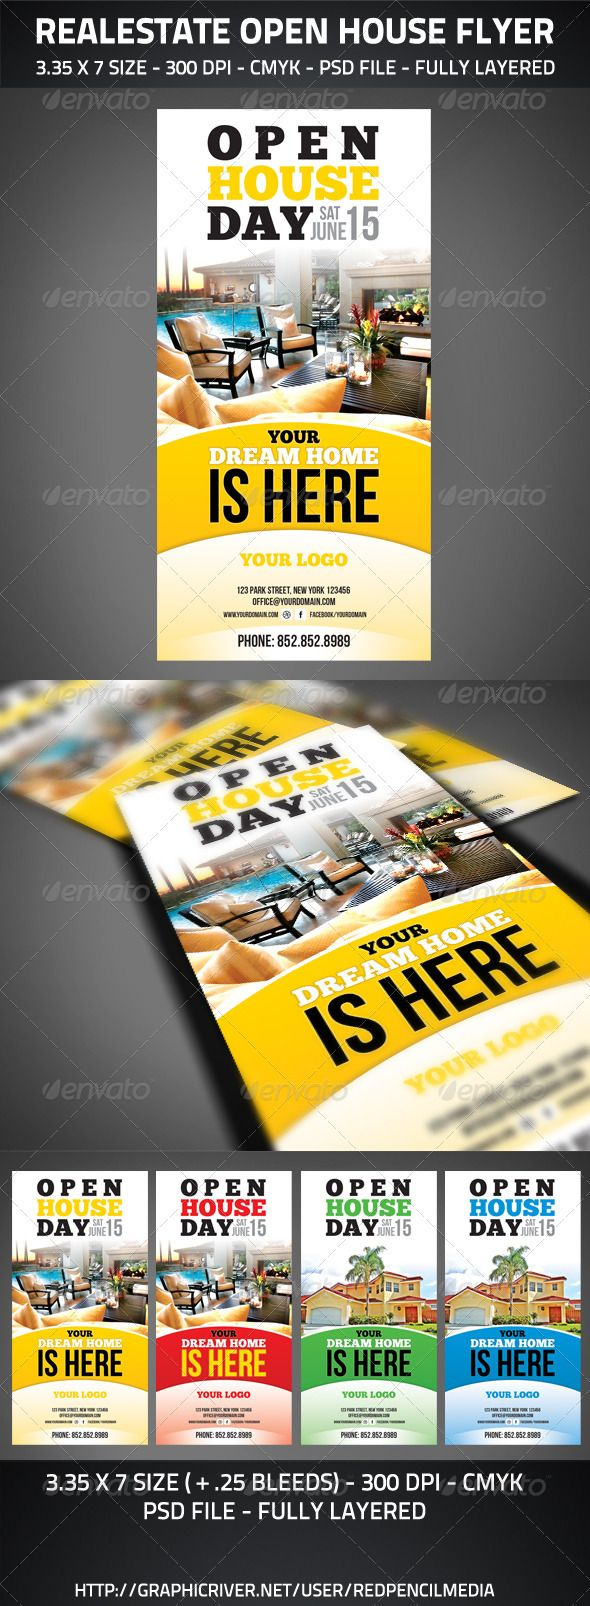 how to print flyers at home